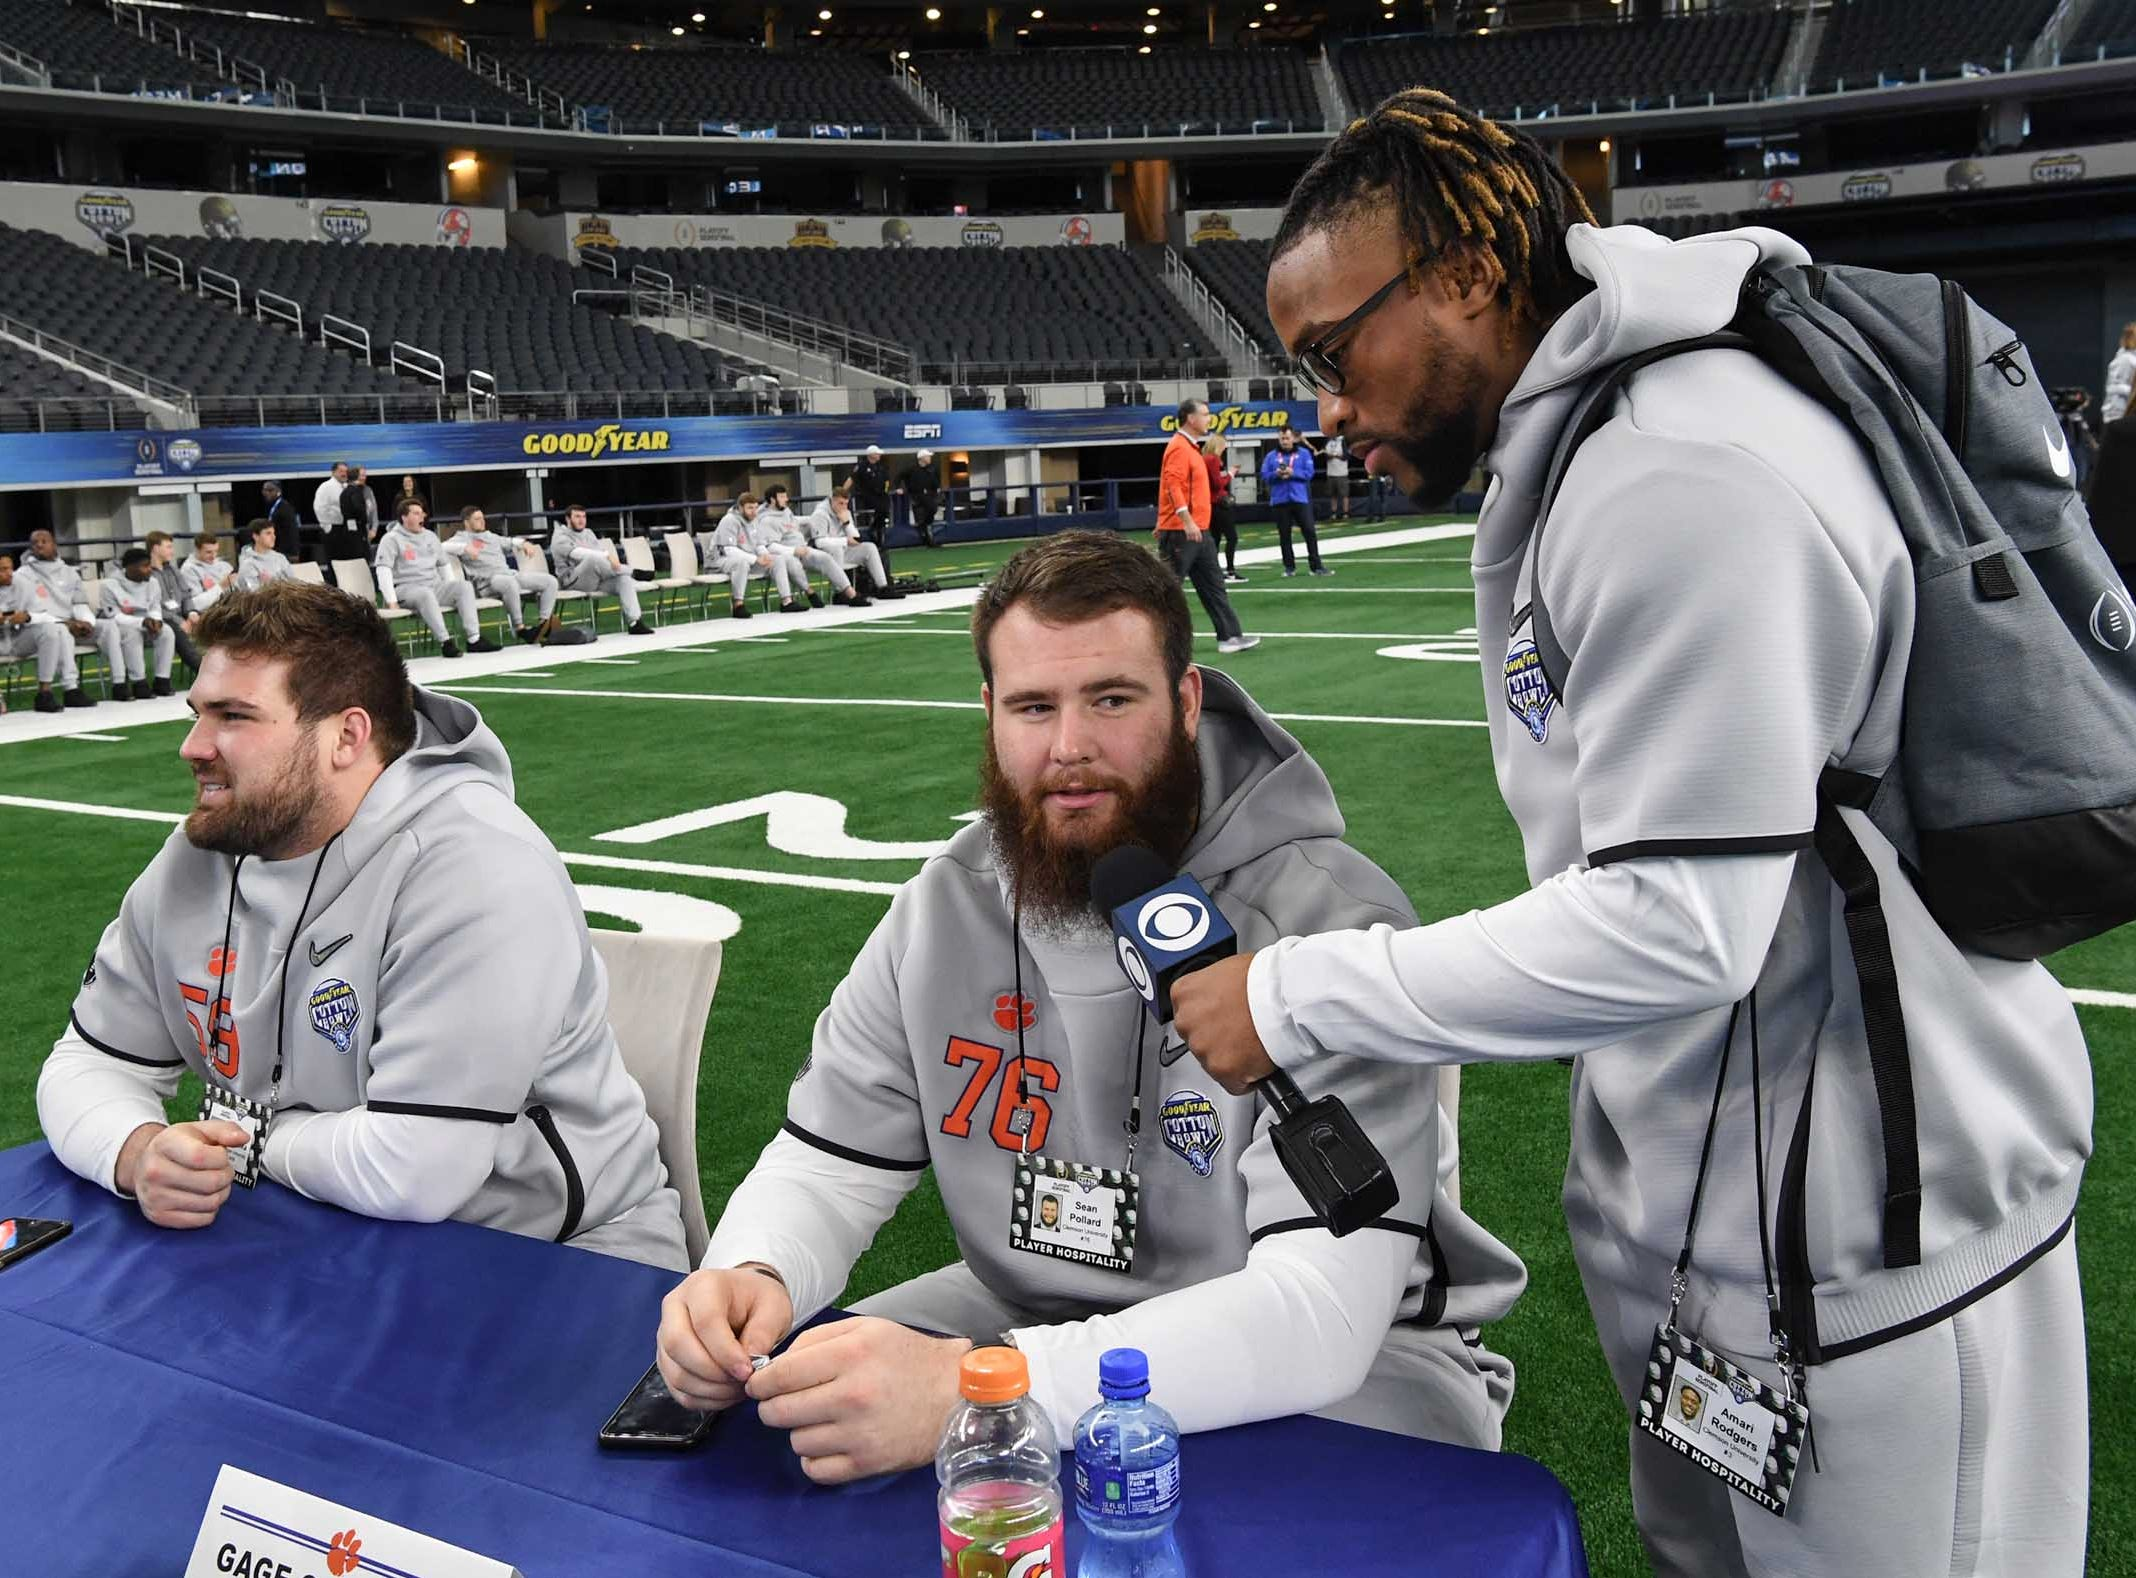 Clemson wide receiver Amari Rodgers, right, interviews offensive lineman Sean Pollard (76) during Media Day for Clemson and Notre Dame at the AT&T Stadium in Dallas December 27, 2018.